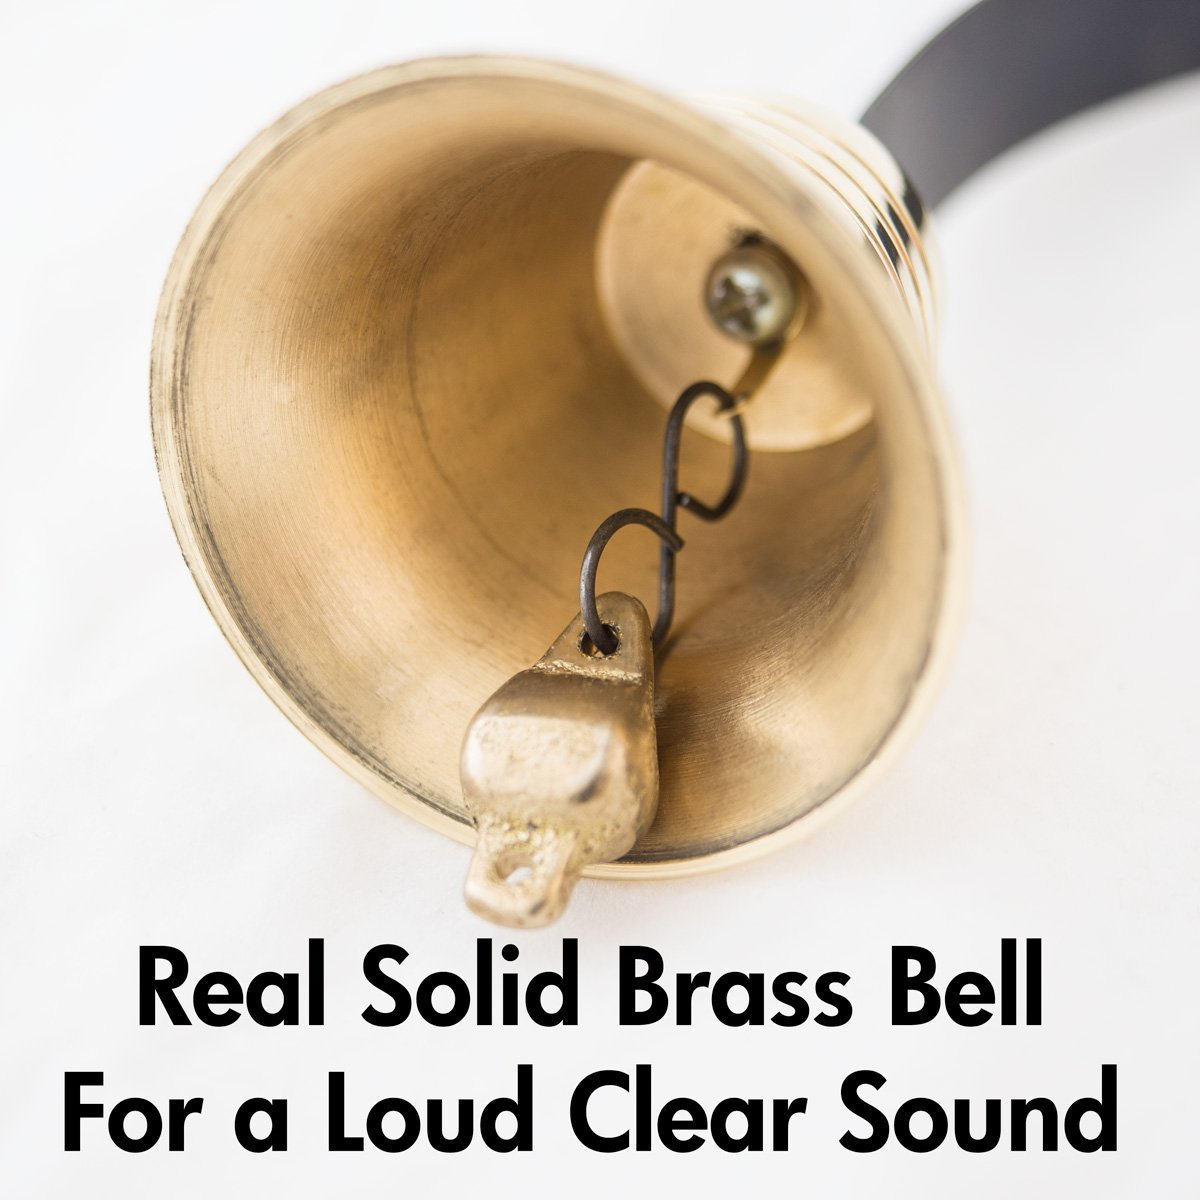 Dog Doorbell - GoGo Bell Deluxe with Solid Brass Bell For Loud Clear Tone by Dog Doorbell (Image #2)